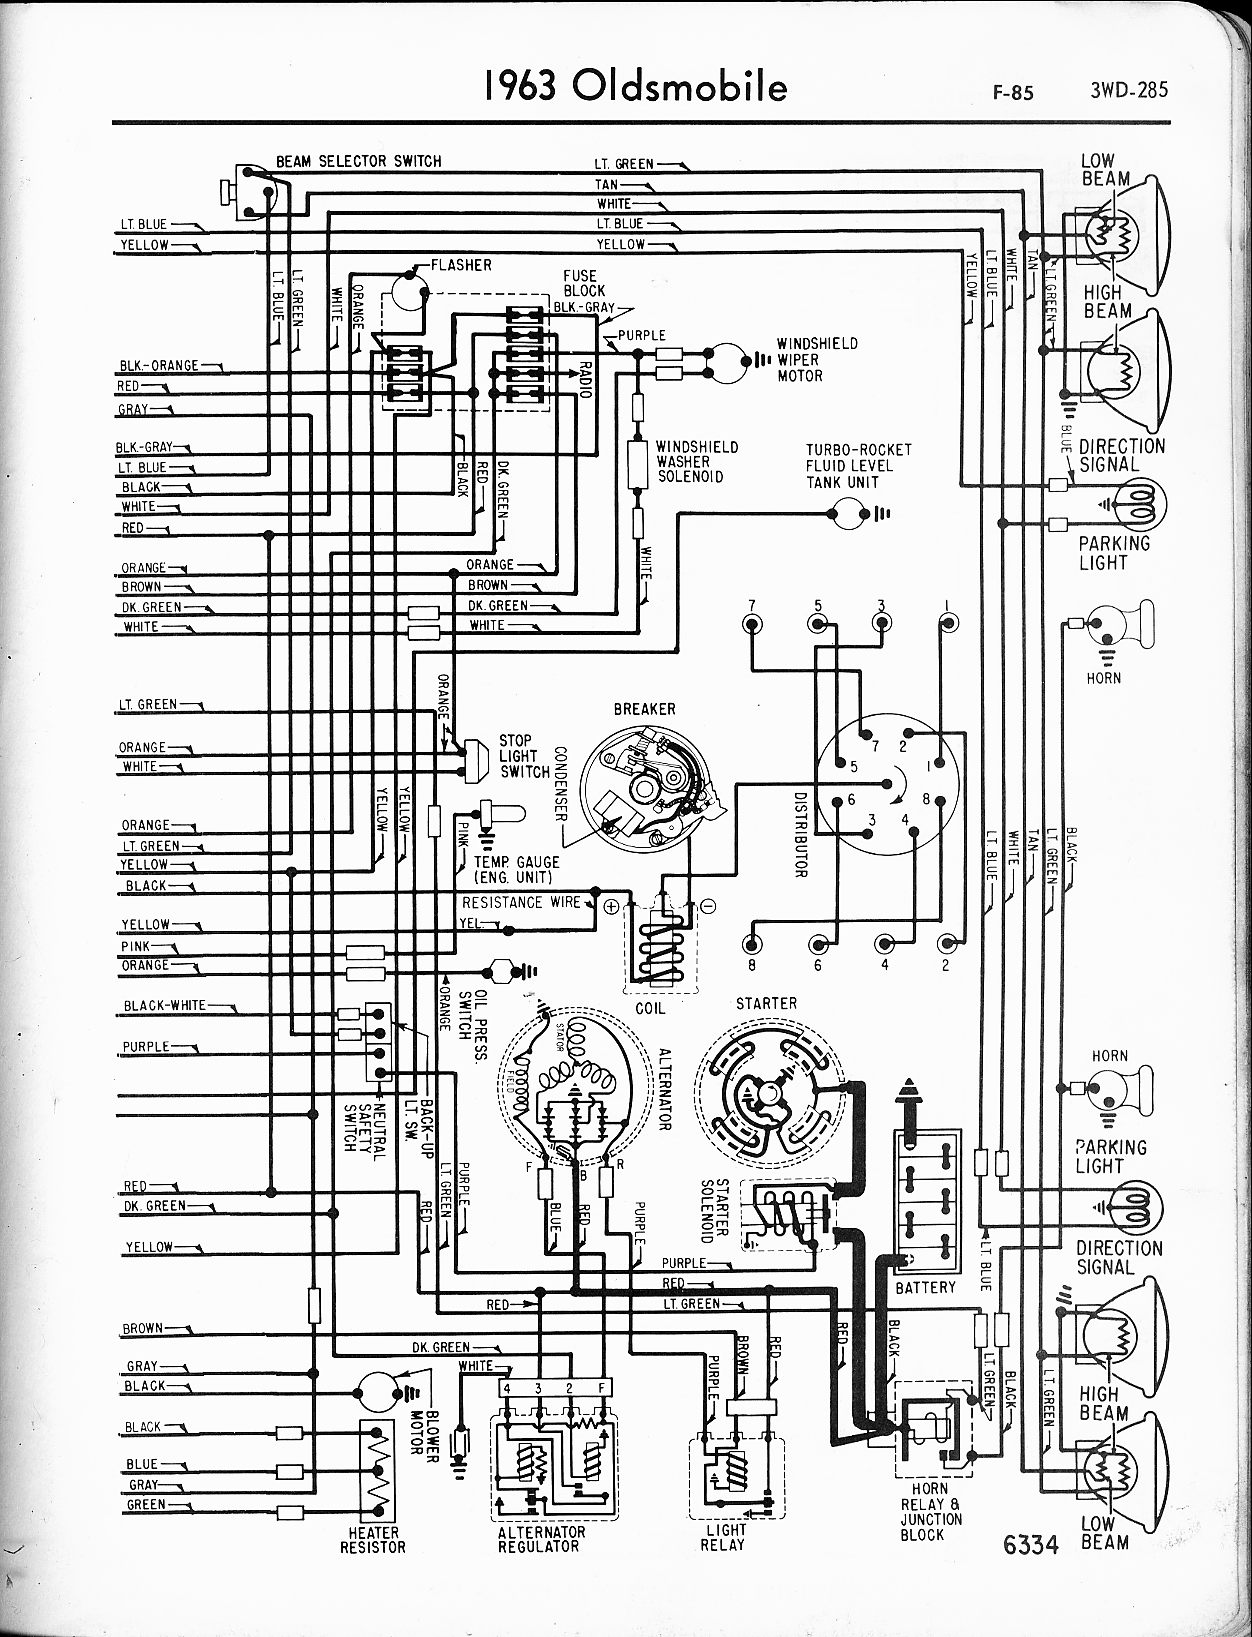 1967 rally 442 oldsmobile wiring schematic